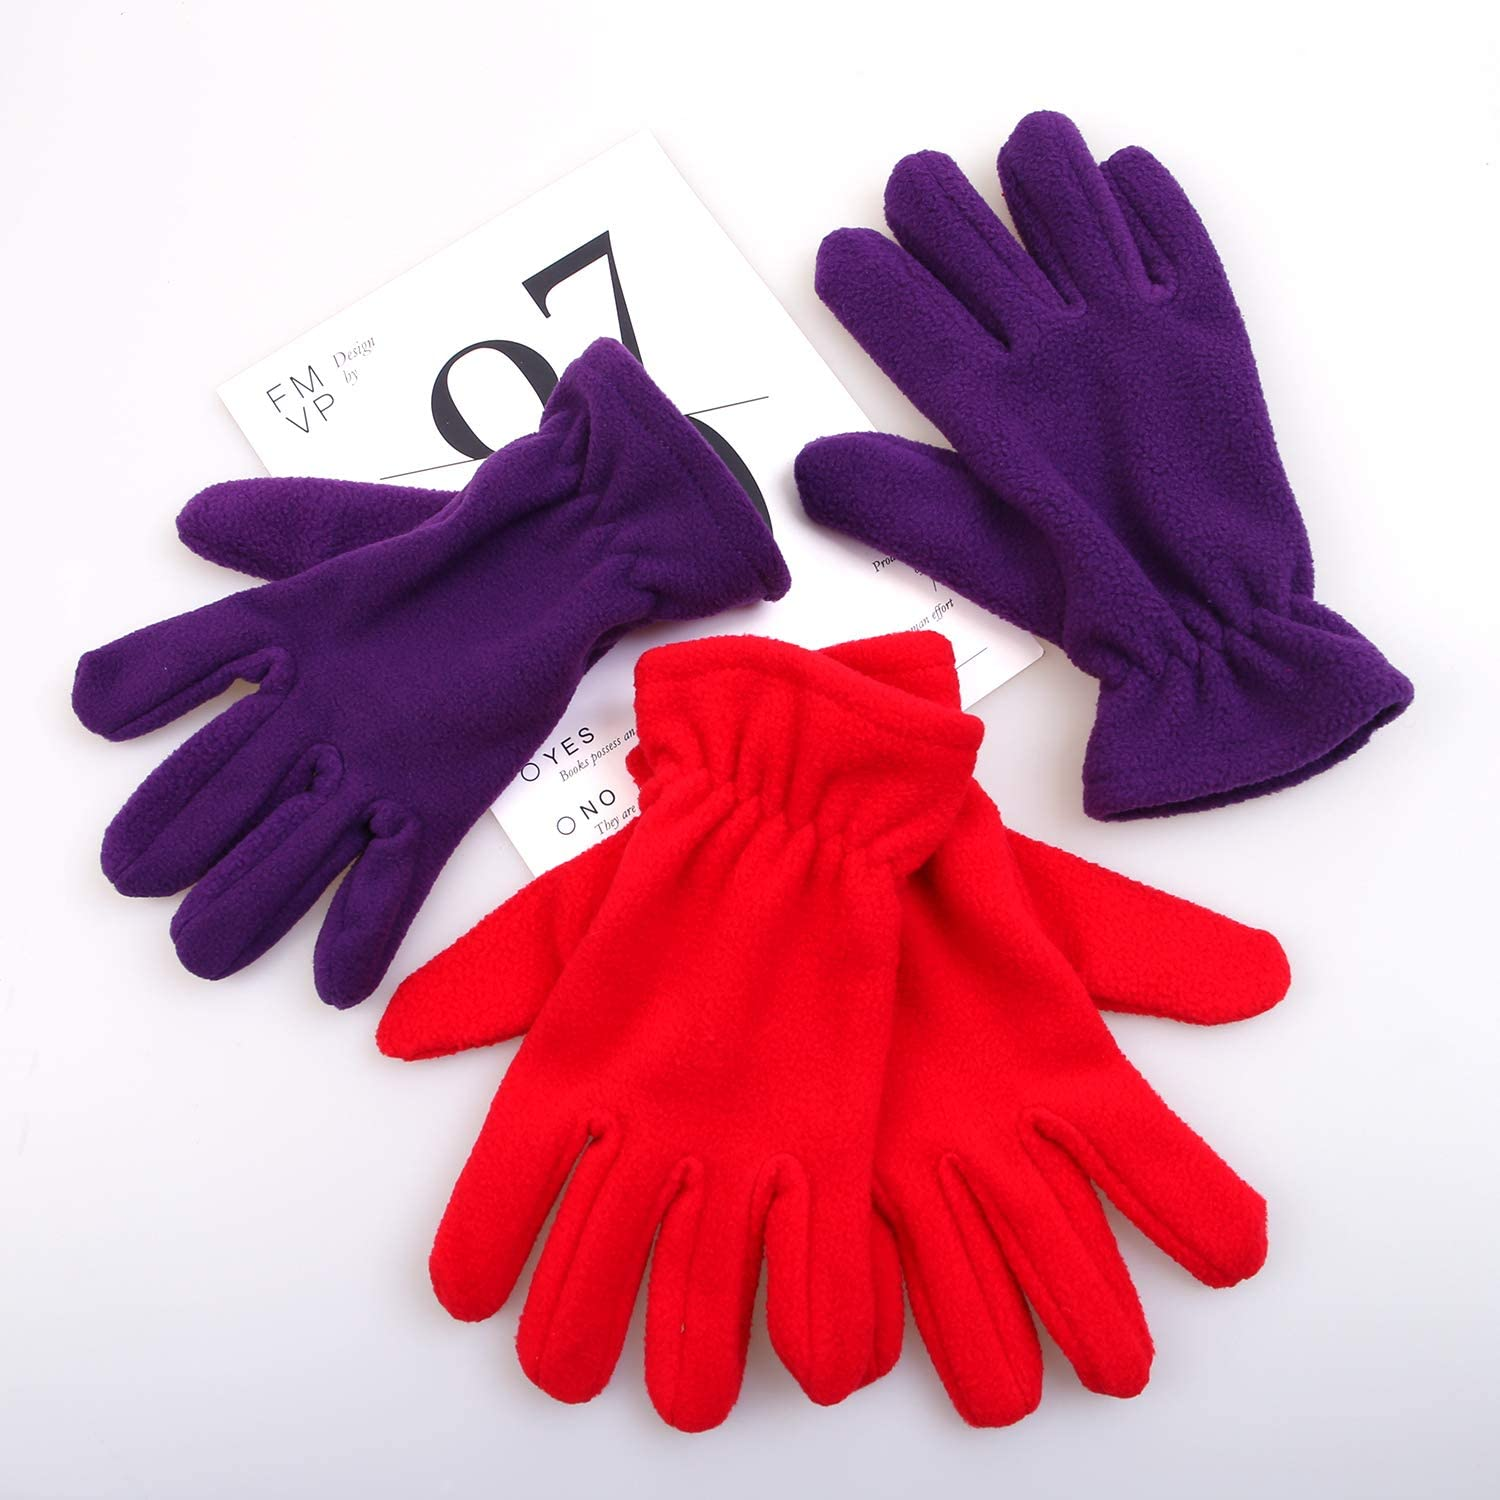 Cooraby 2 Pairs Kids Winter Gloves Polar Fleece Warm Gloves for Winter Cold Weather Supplies